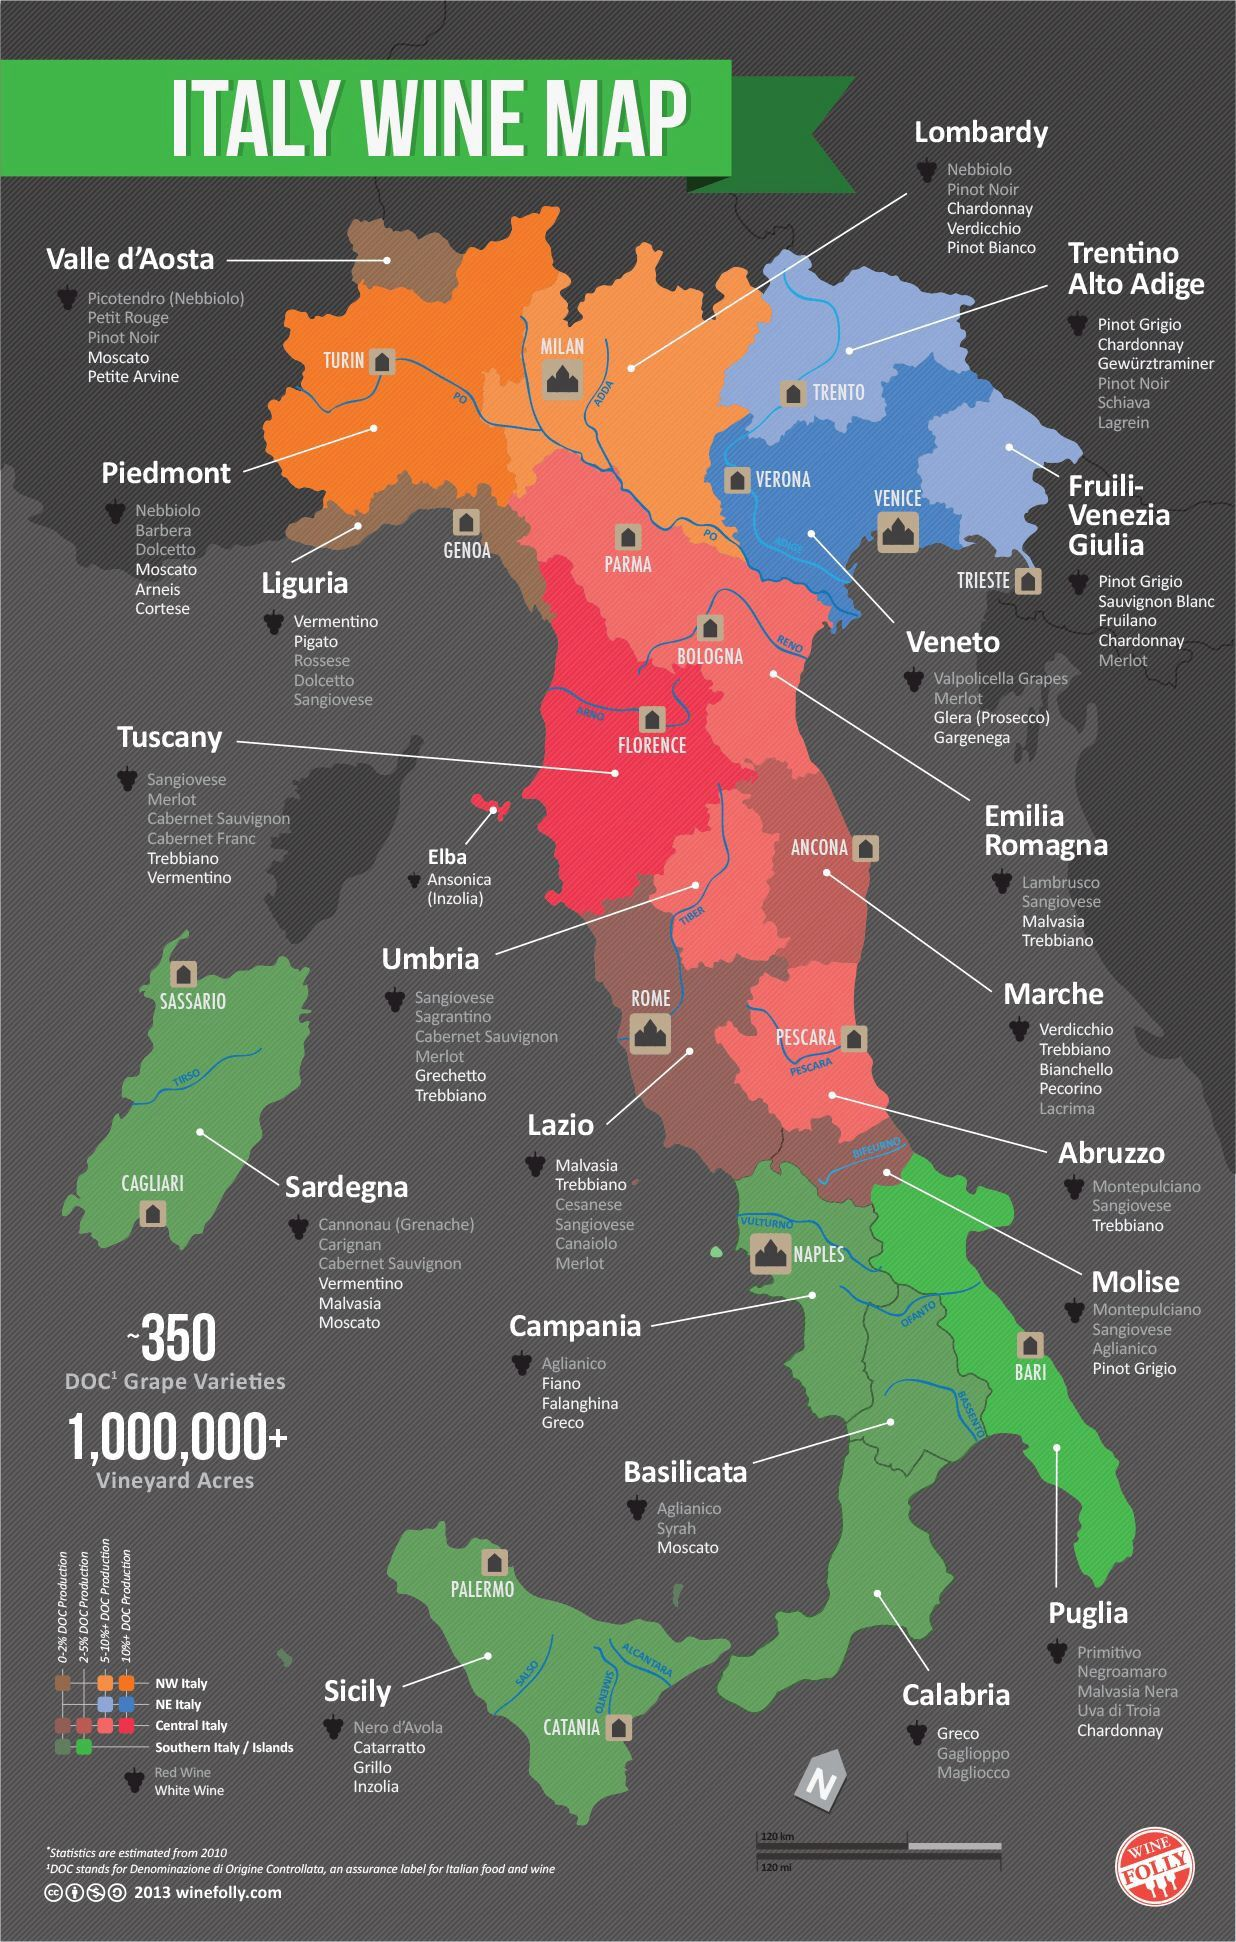 Show A Map Of Italy.33 Maps That Will Show You The World In New Ways Wine Italy Map